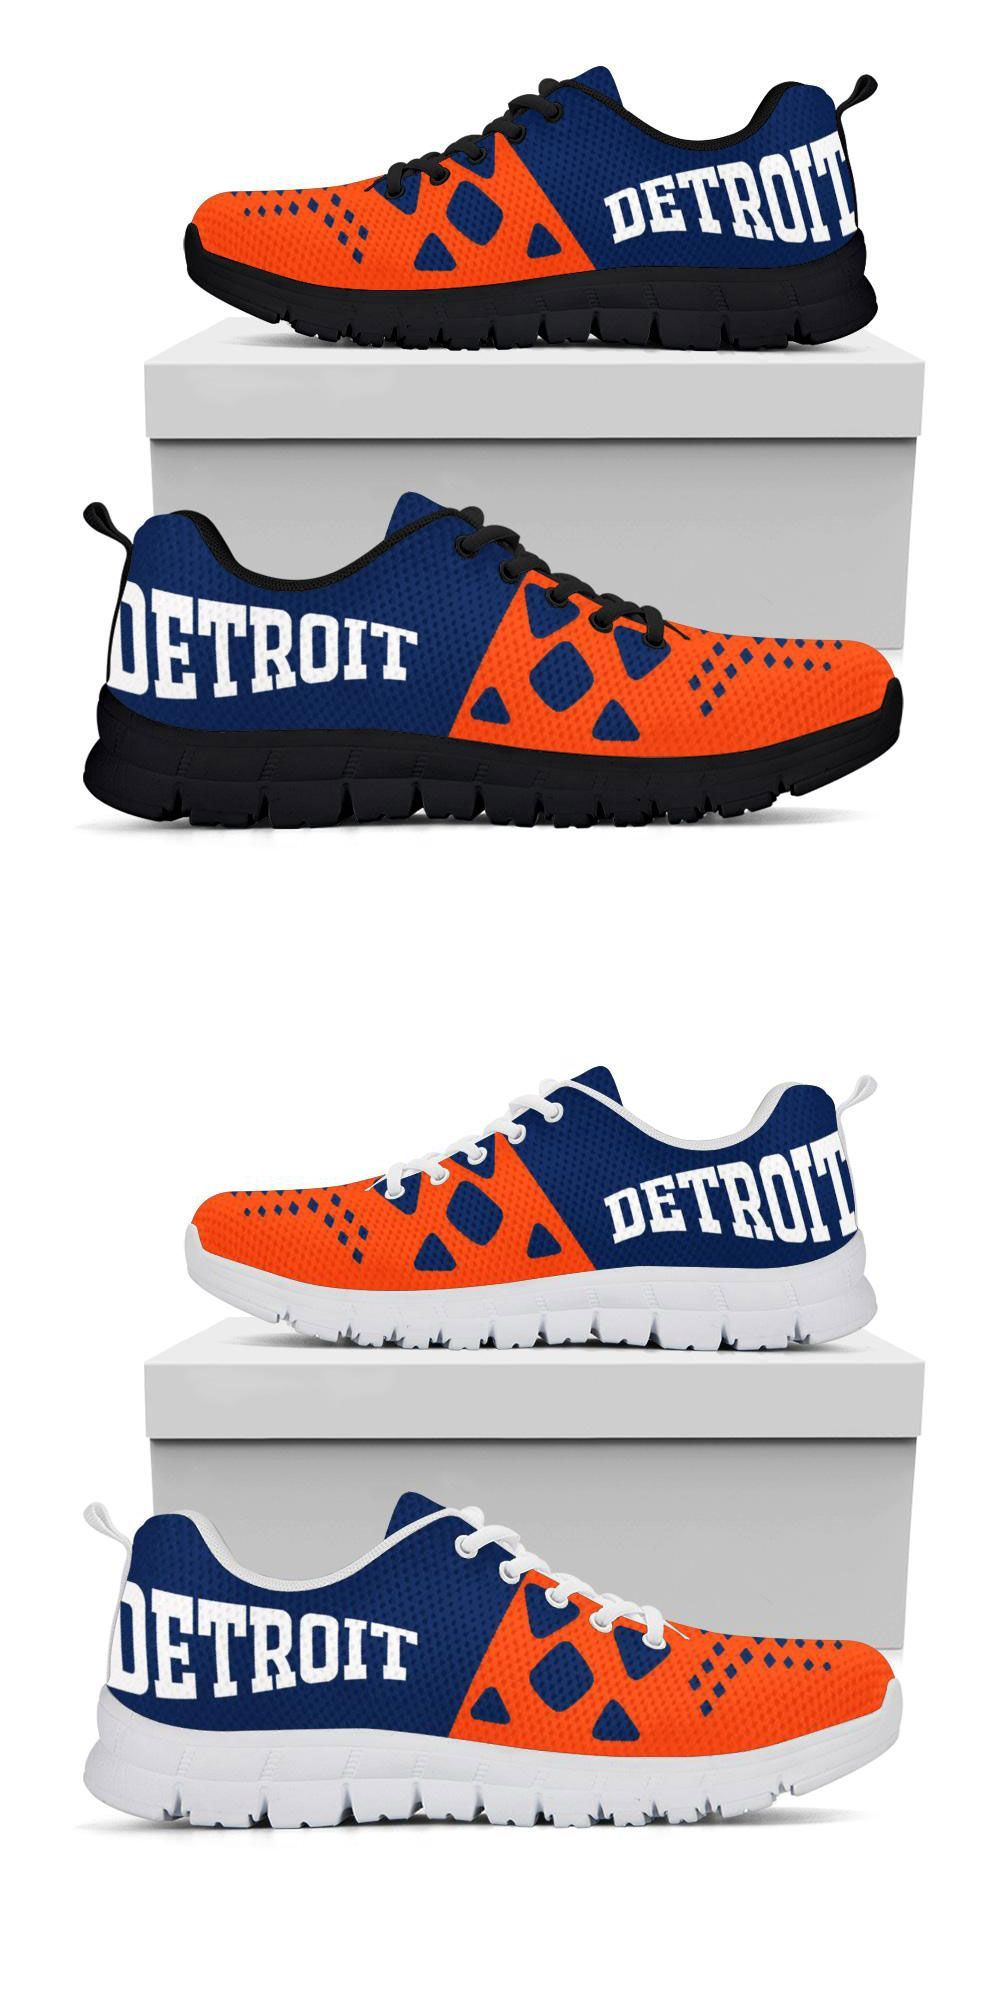 Detroit Tigers Colors Running Shoes Sport The Detroit Tigers Colors While You Train To Take On The World In The Gym O Running Shoes Detroit Tigers Detroit